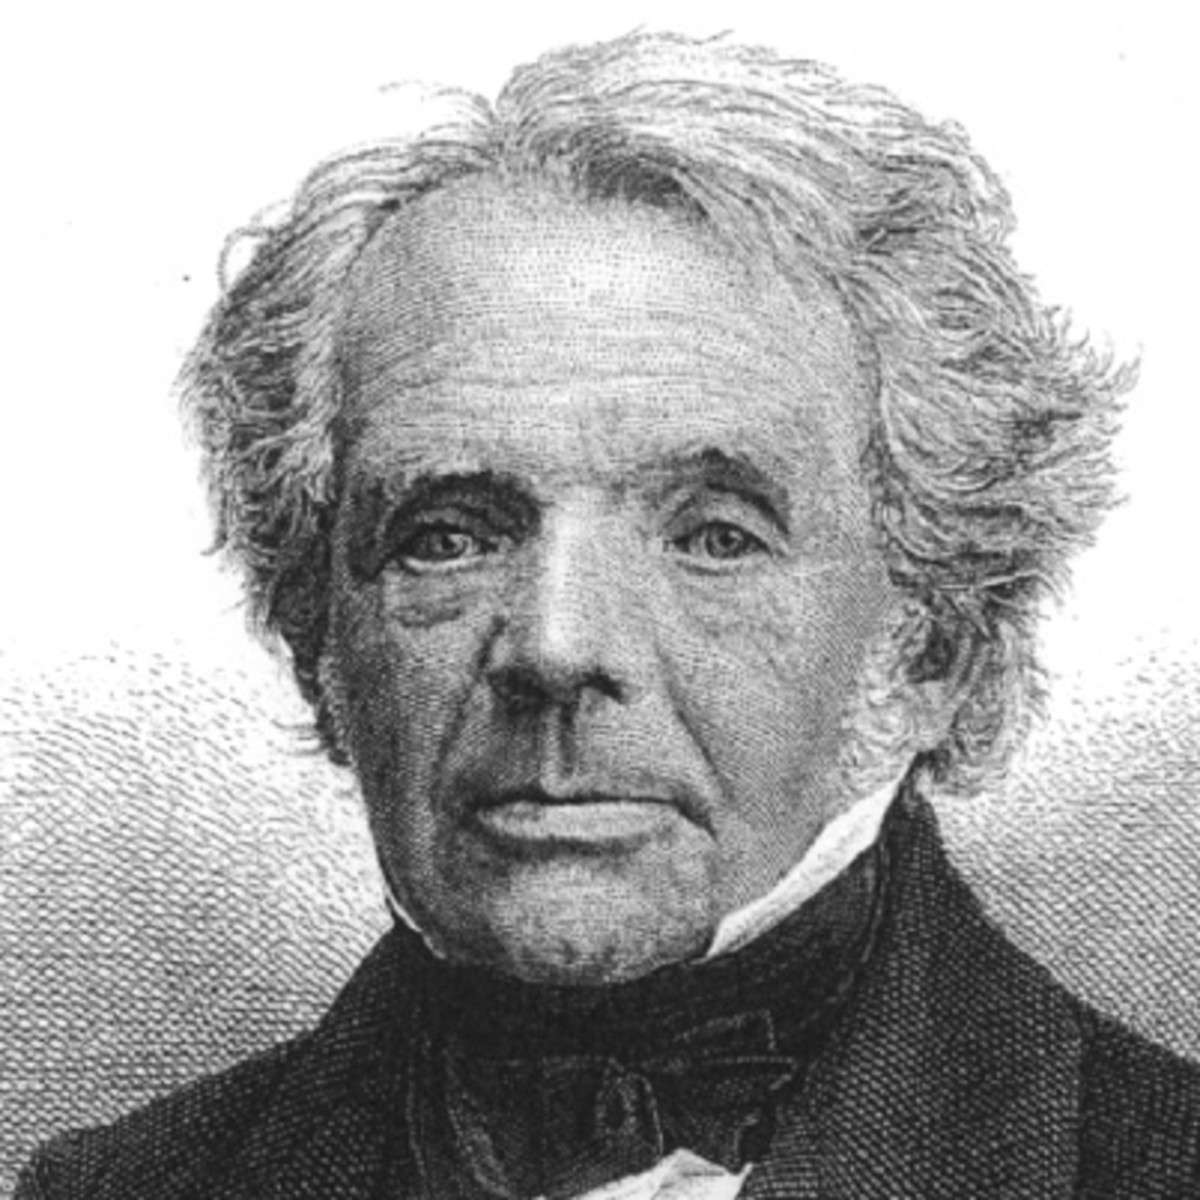 a biography of august ferdinand mobius born in schulpforta germany August ferdinand möbius (german: [ˈmøːbi̯ʊs] 17 november 1790 - 26 september 1868) was a german mathematician and theoretical astronomerhe is best known for his discovery of the möbius strip, a non-orientable two-dimensional surface with only one side when embedded in three-dimensional euclidean space.